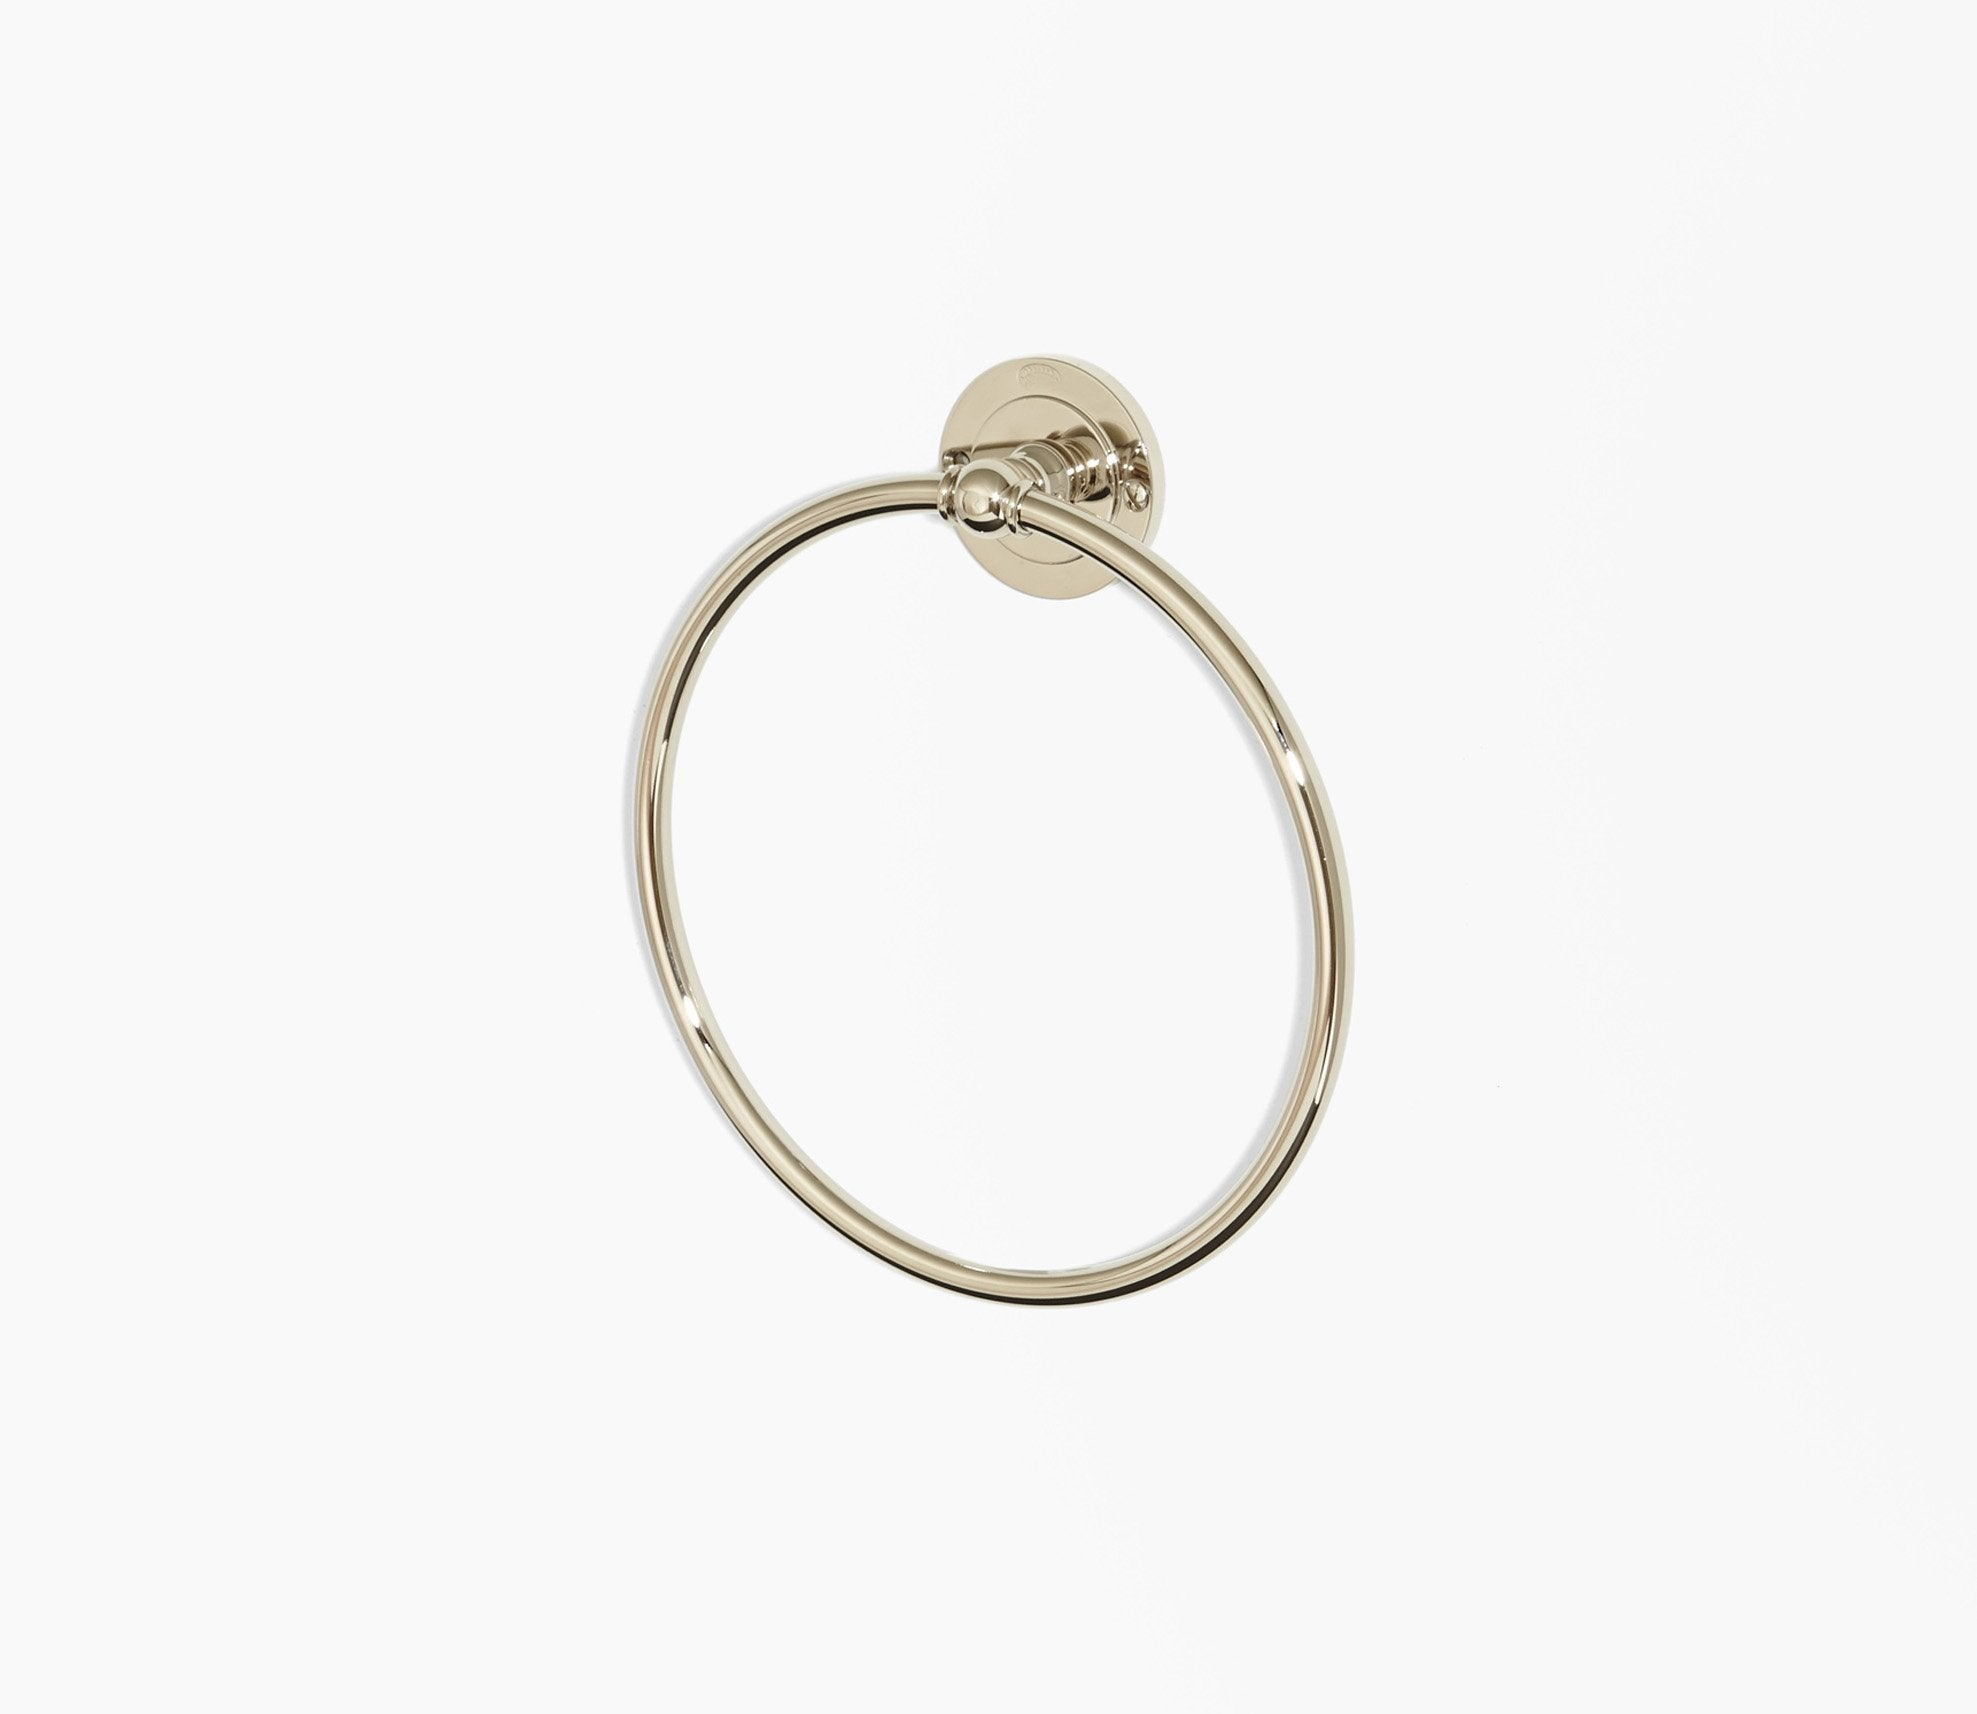 Moderna Towel Ring Product Image 1